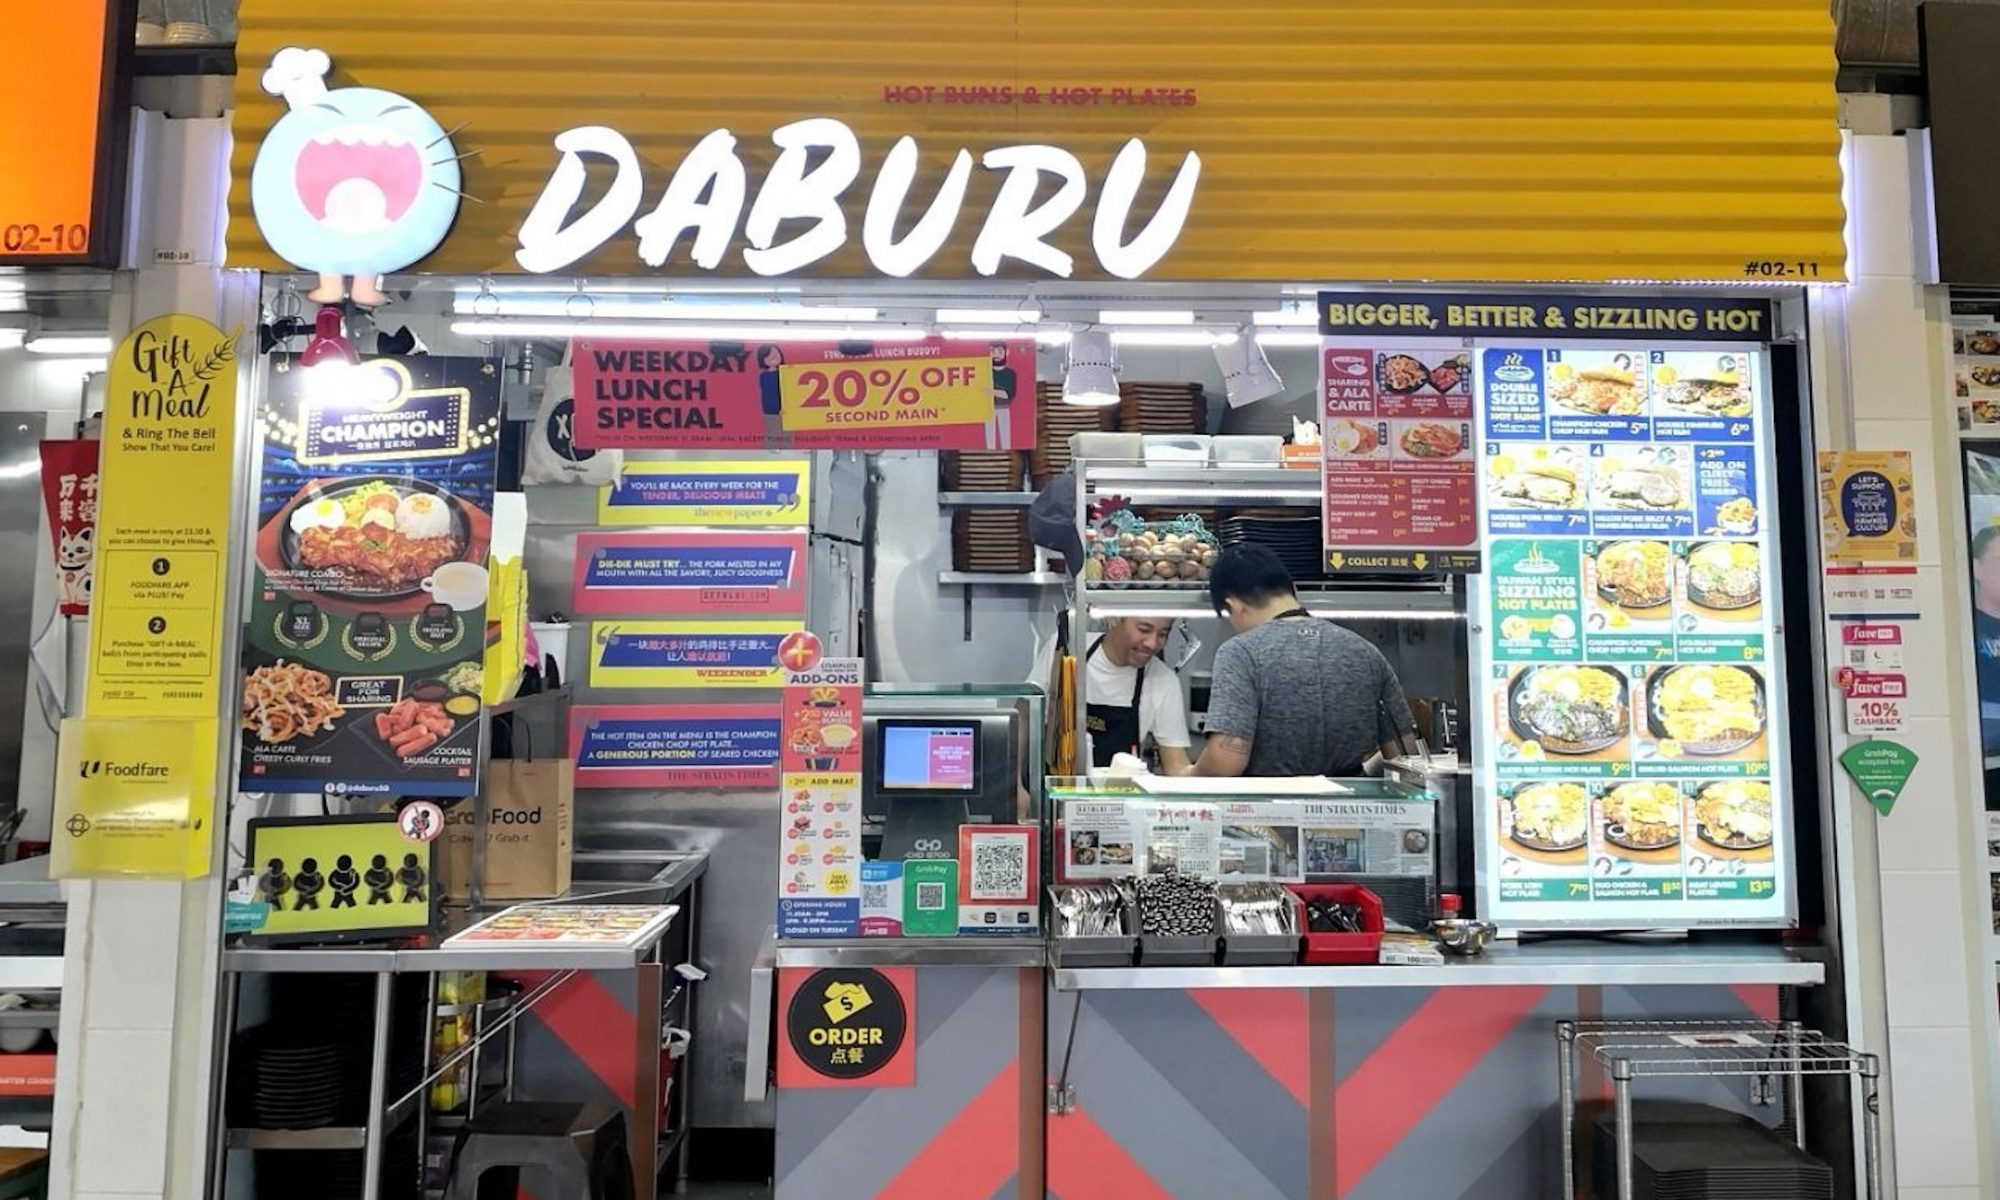 DABURU stall front WhyQ Delivery